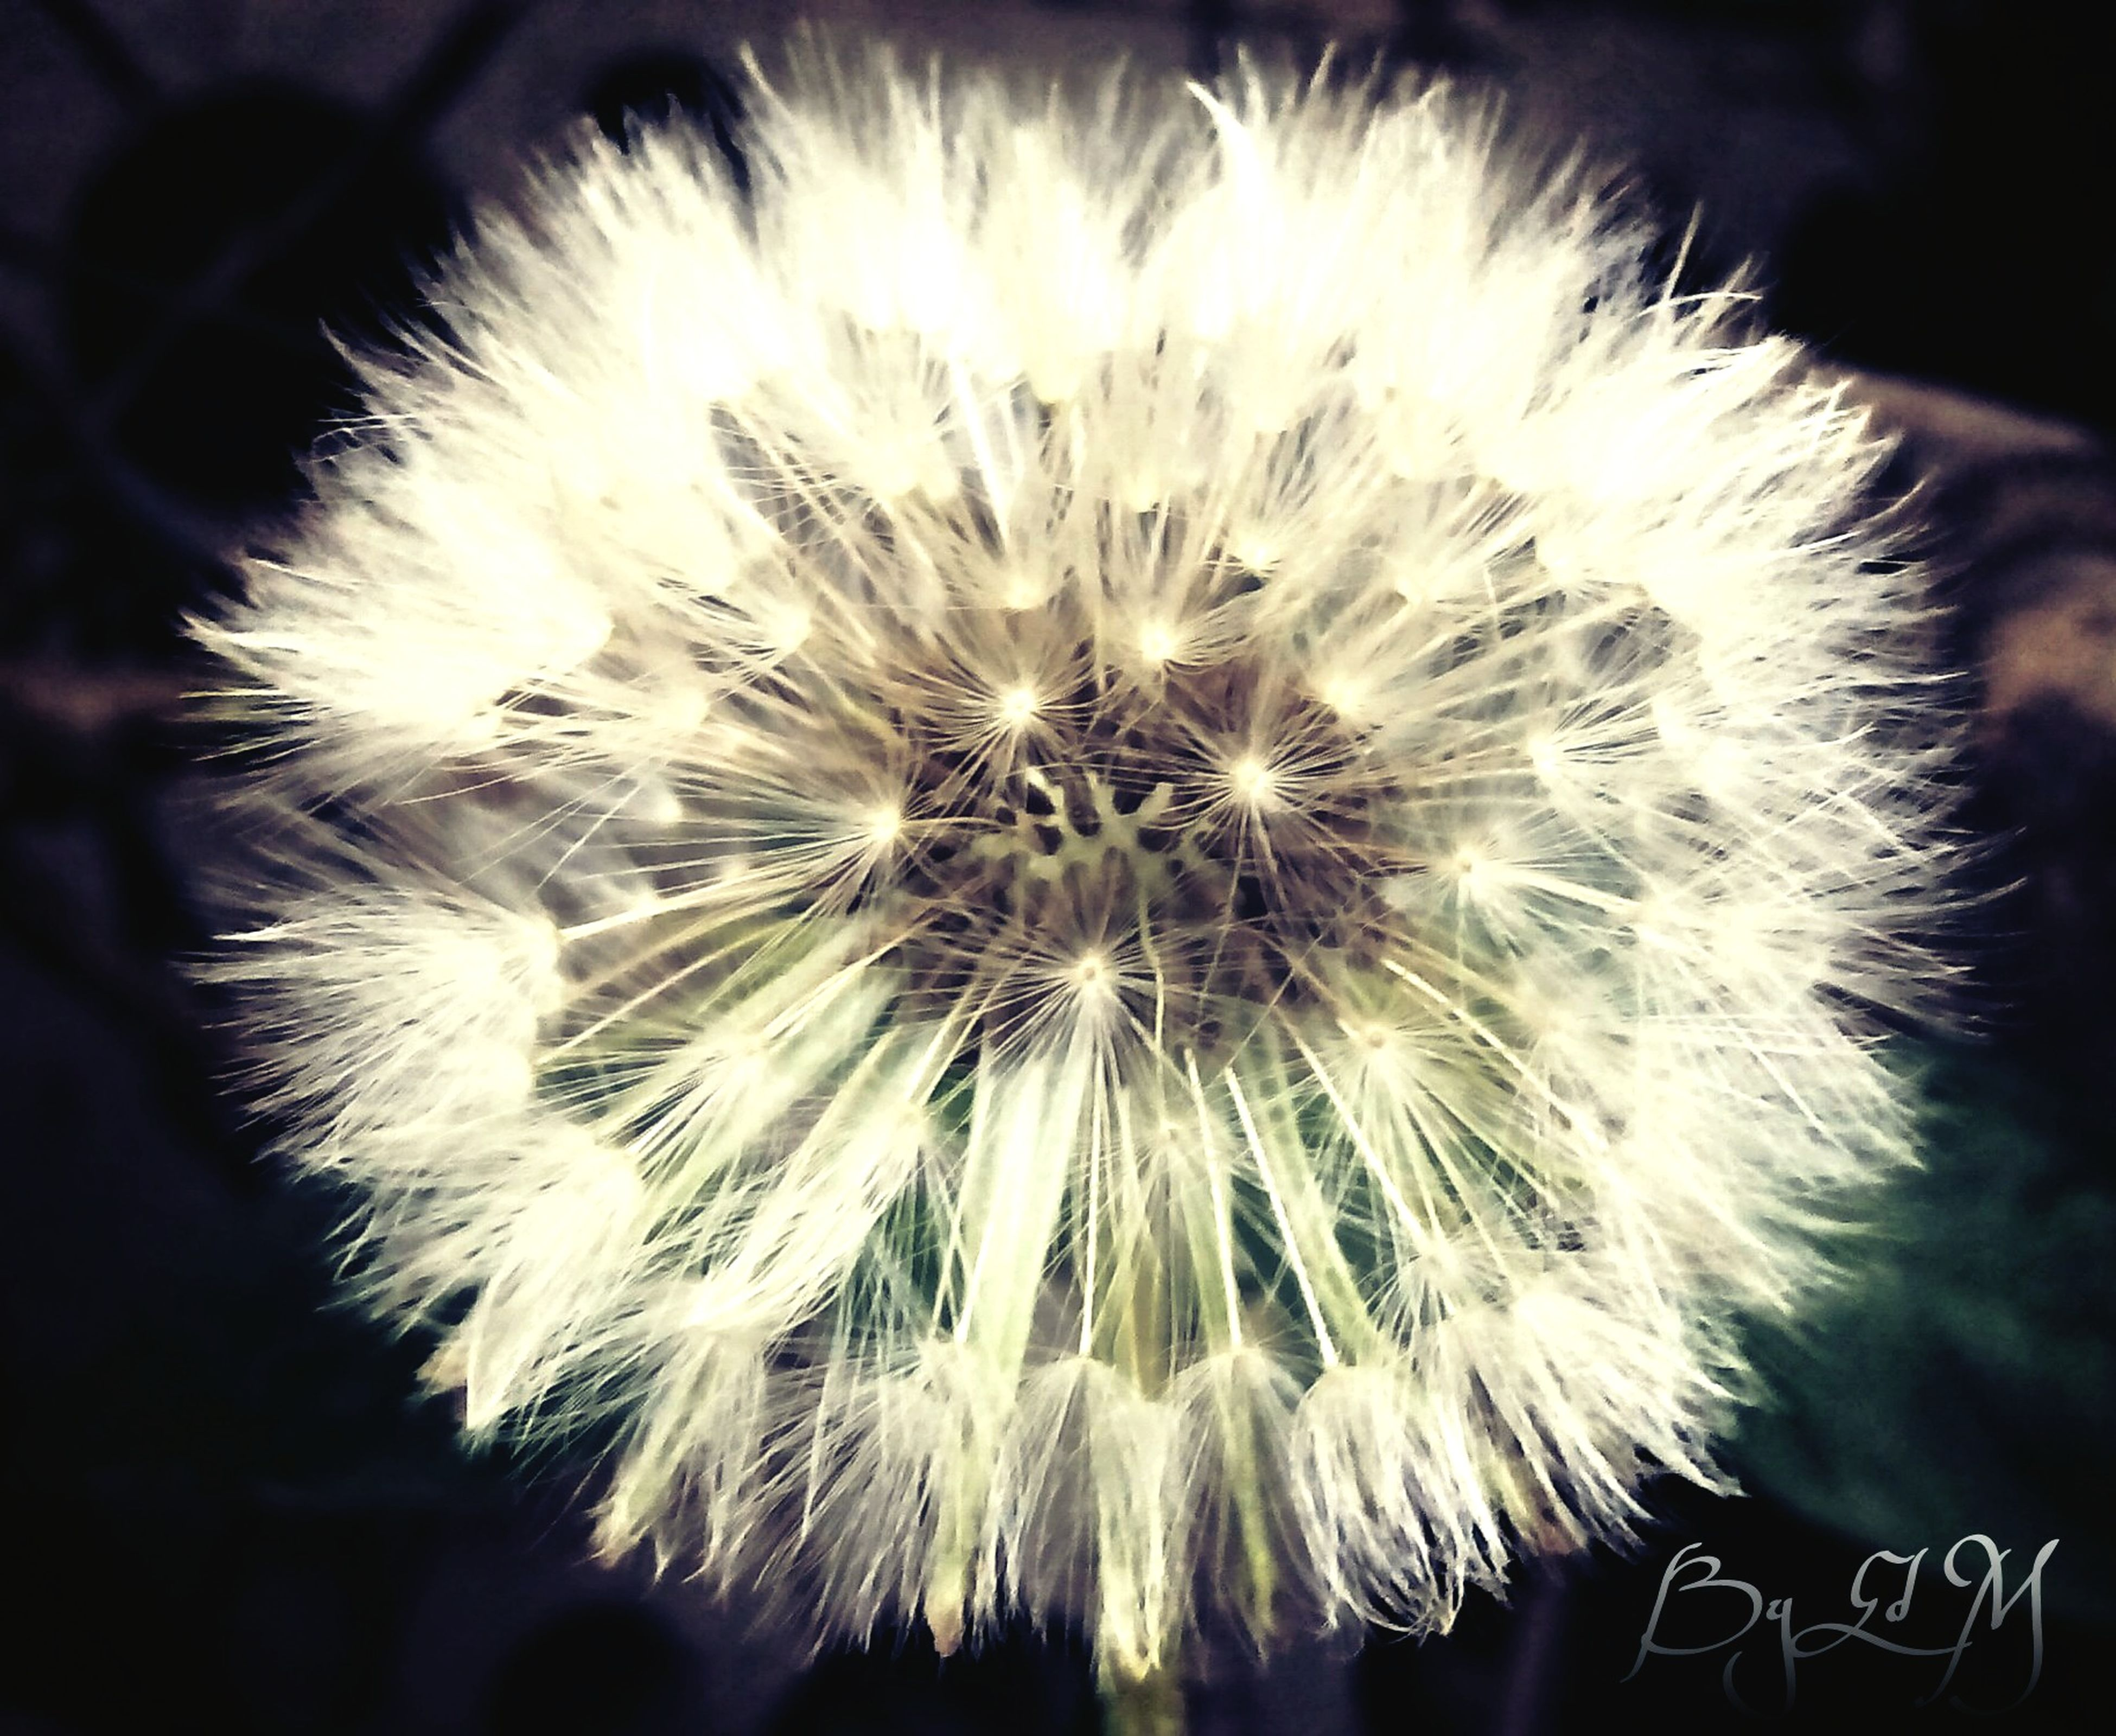 flower, dandelion, flower head, fragility, freshness, close-up, growth, beauty in nature, single flower, white color, nature, focus on foreground, softness, dandelion seed, petal, pollen, white, wildflower, uncultivated, blooming